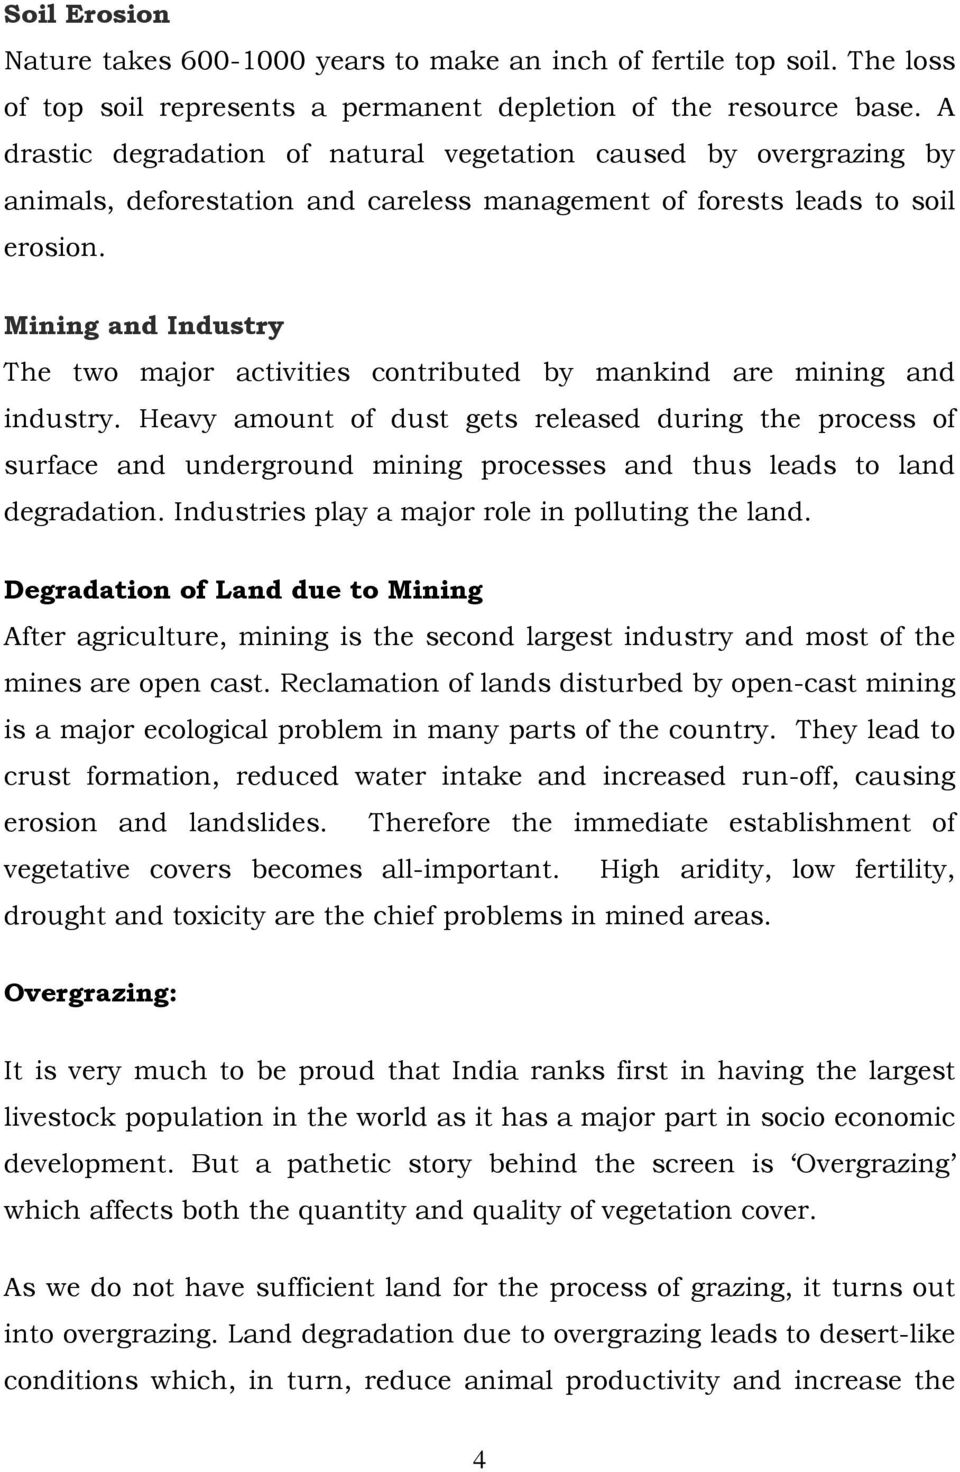 Mining and Industry The two major activities contributed by mankind are mining and industry.